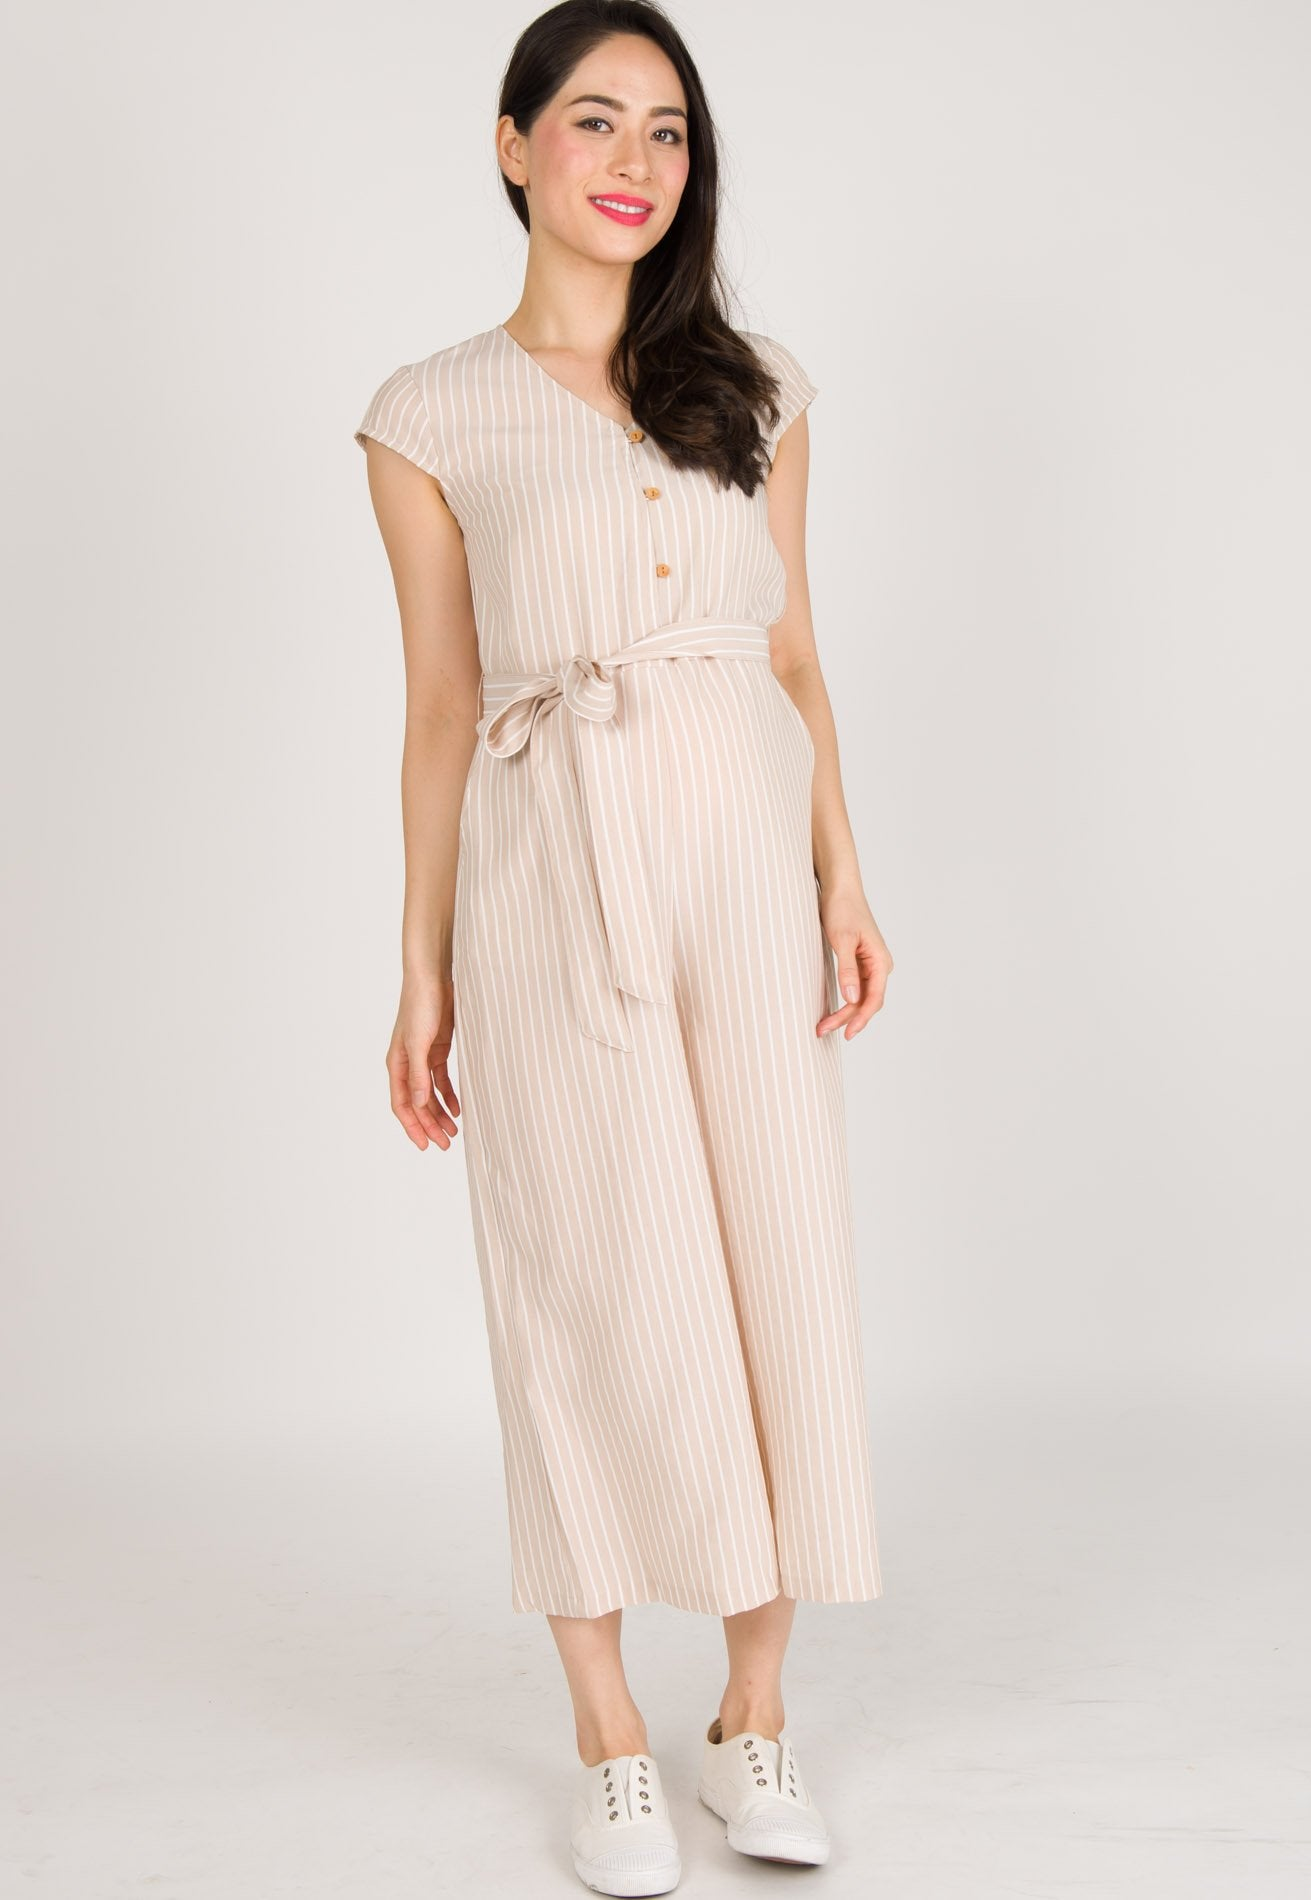 Mothercot Fleur Button Down Nursing Jumpsuit in Nude  by JumpEatCry - Maternity and nursing wear